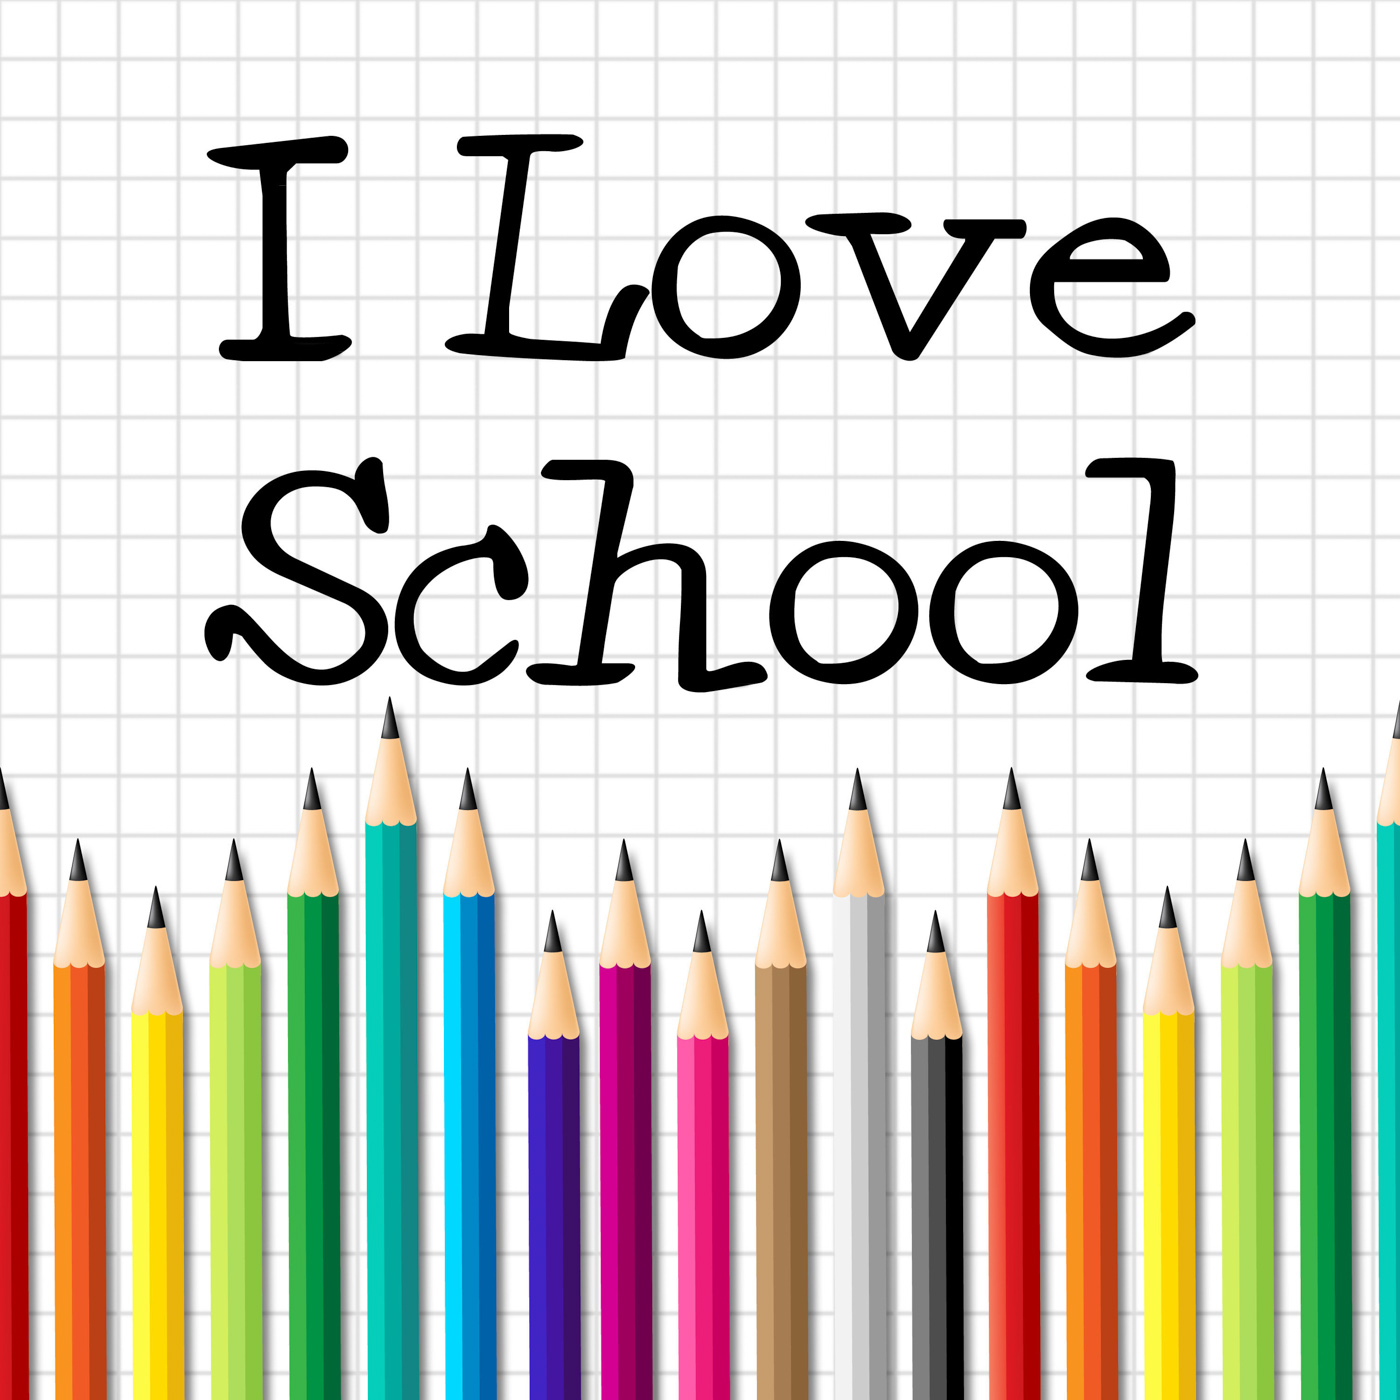 I love school represents education training and kid photo